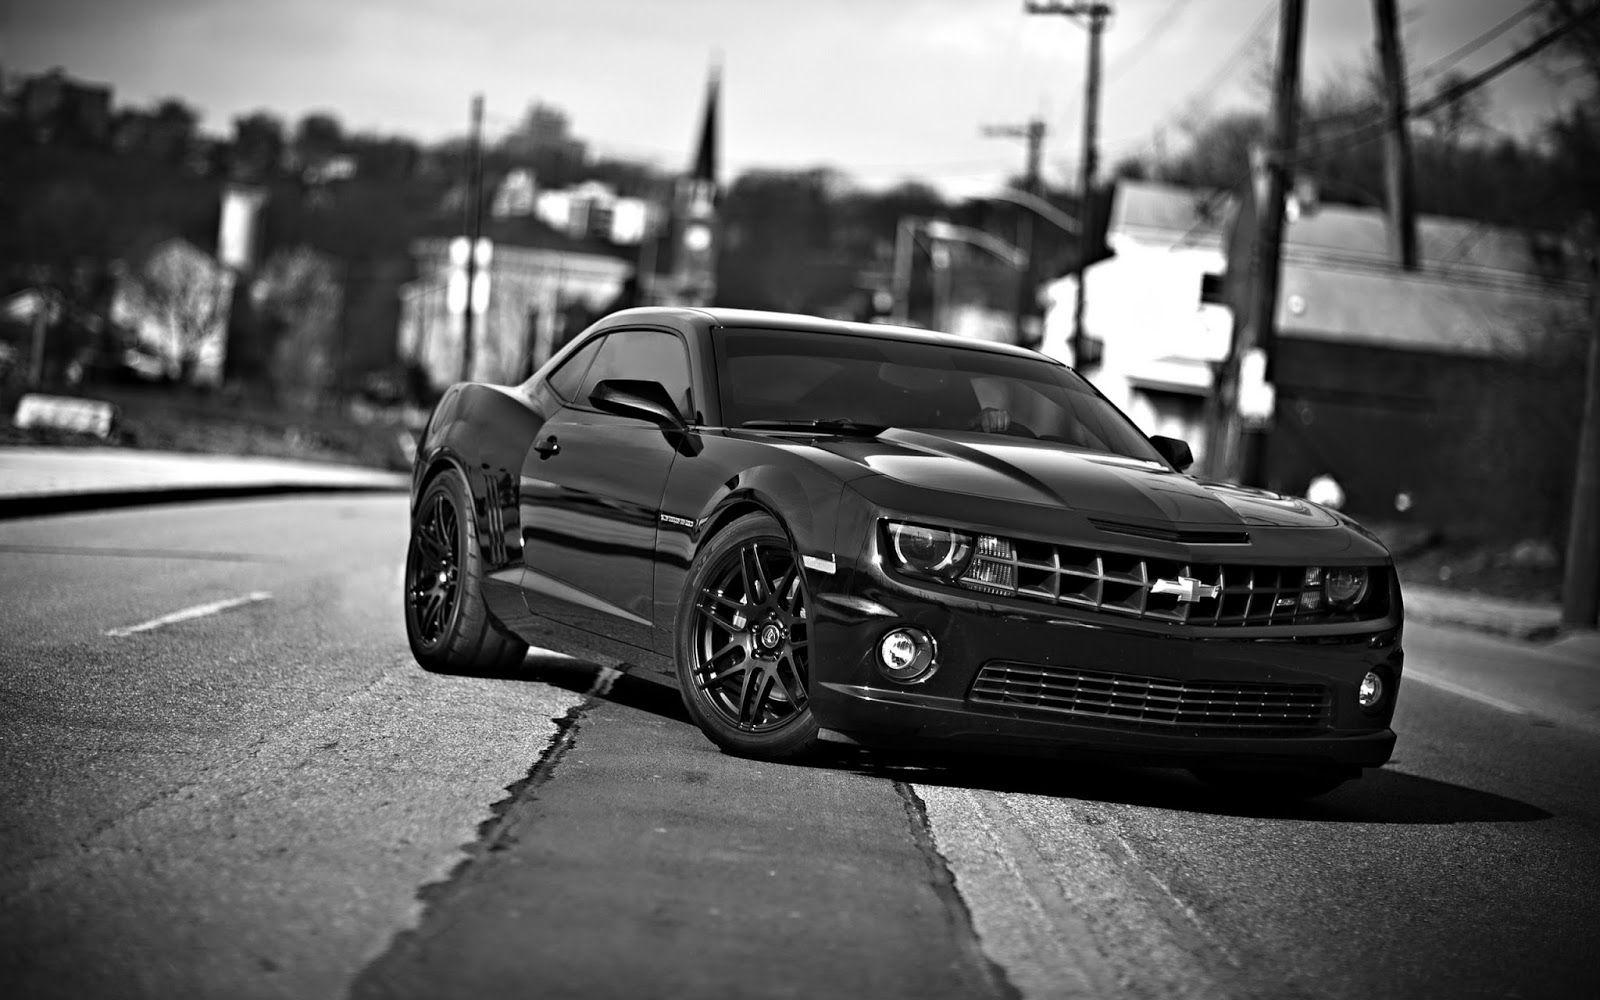 Chevrolet Camaro Cars Front Full Hd 1080p Cars Wallpapers Desktop